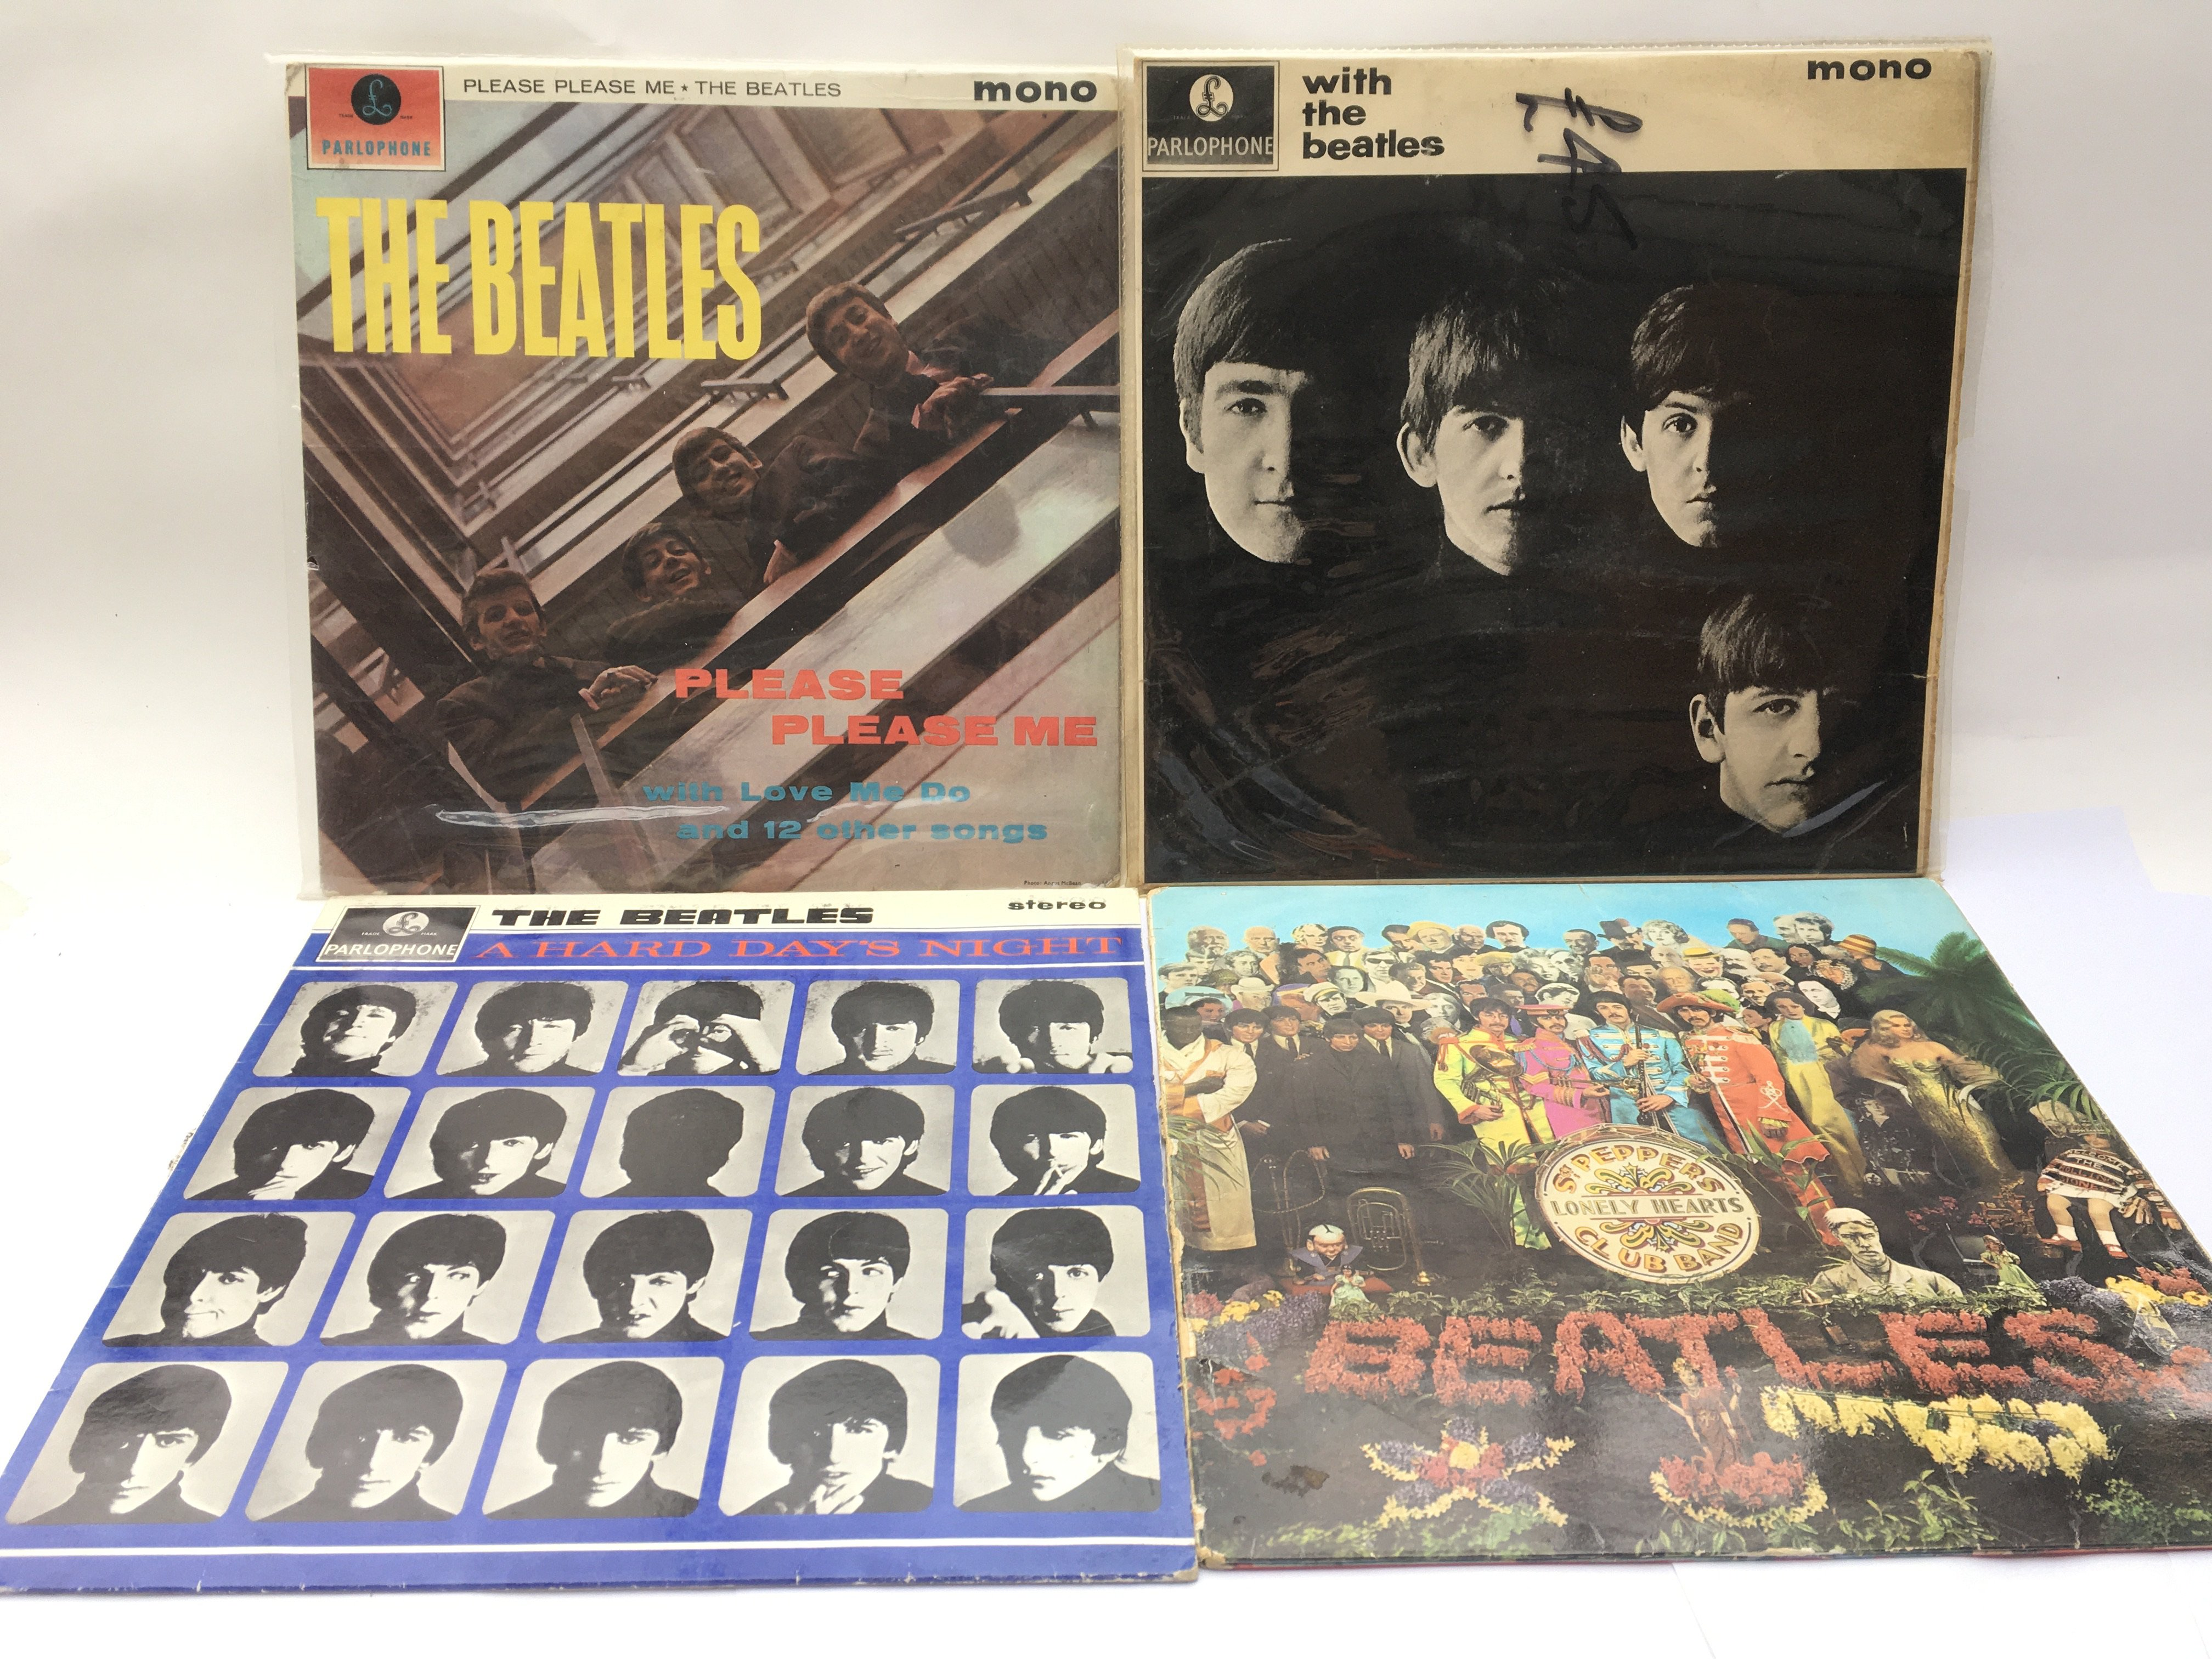 Four early UK issue Beatles LPs comprising 'Please